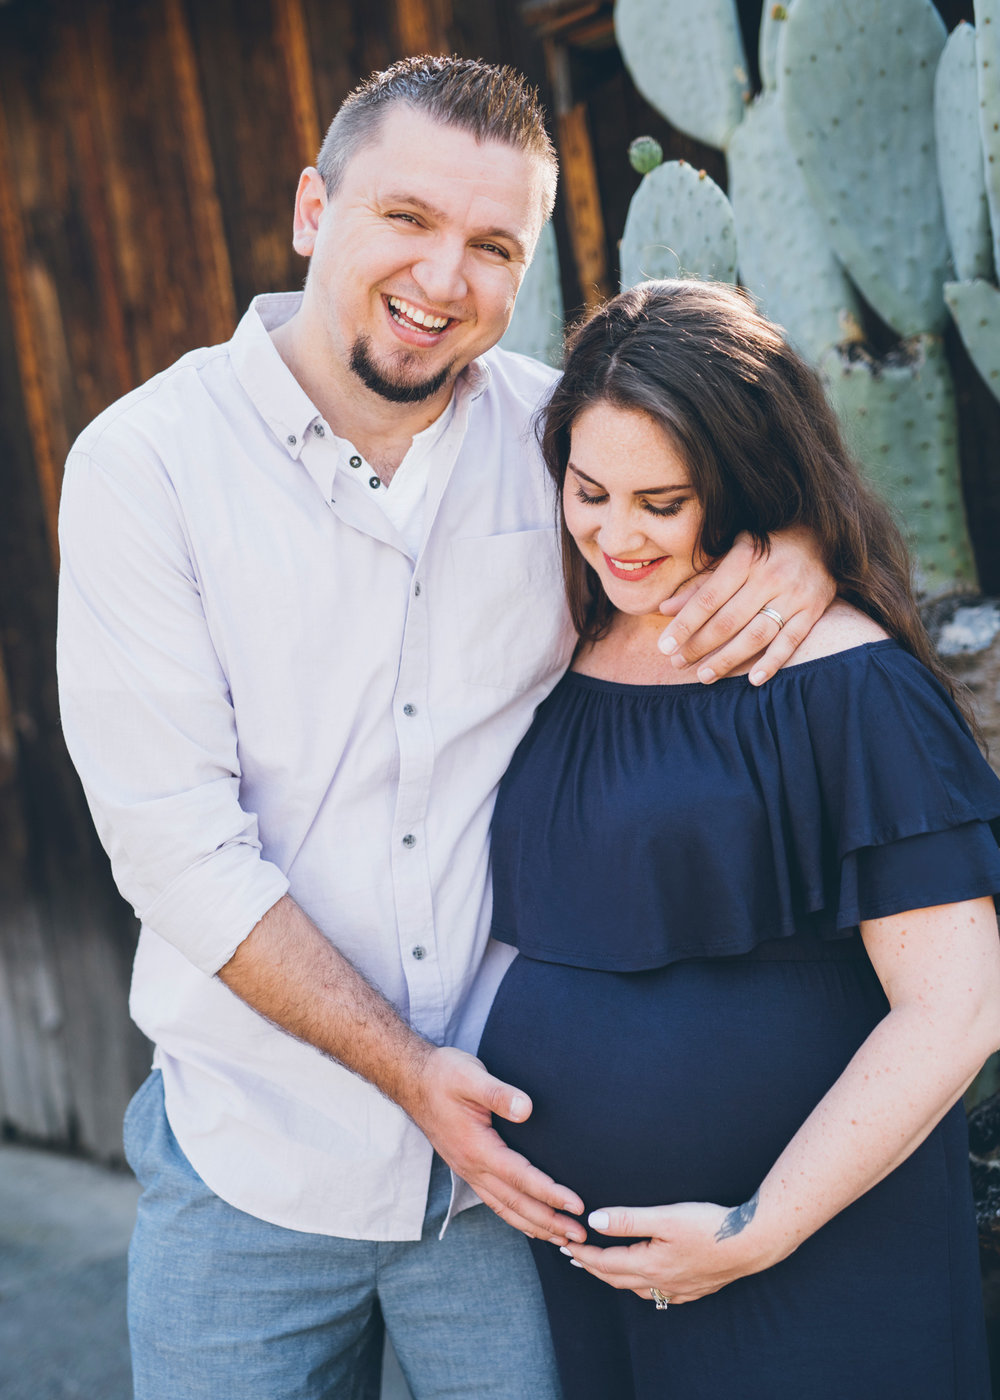 smiling-father-touching-his-wife's-pregnant-belly.jpg